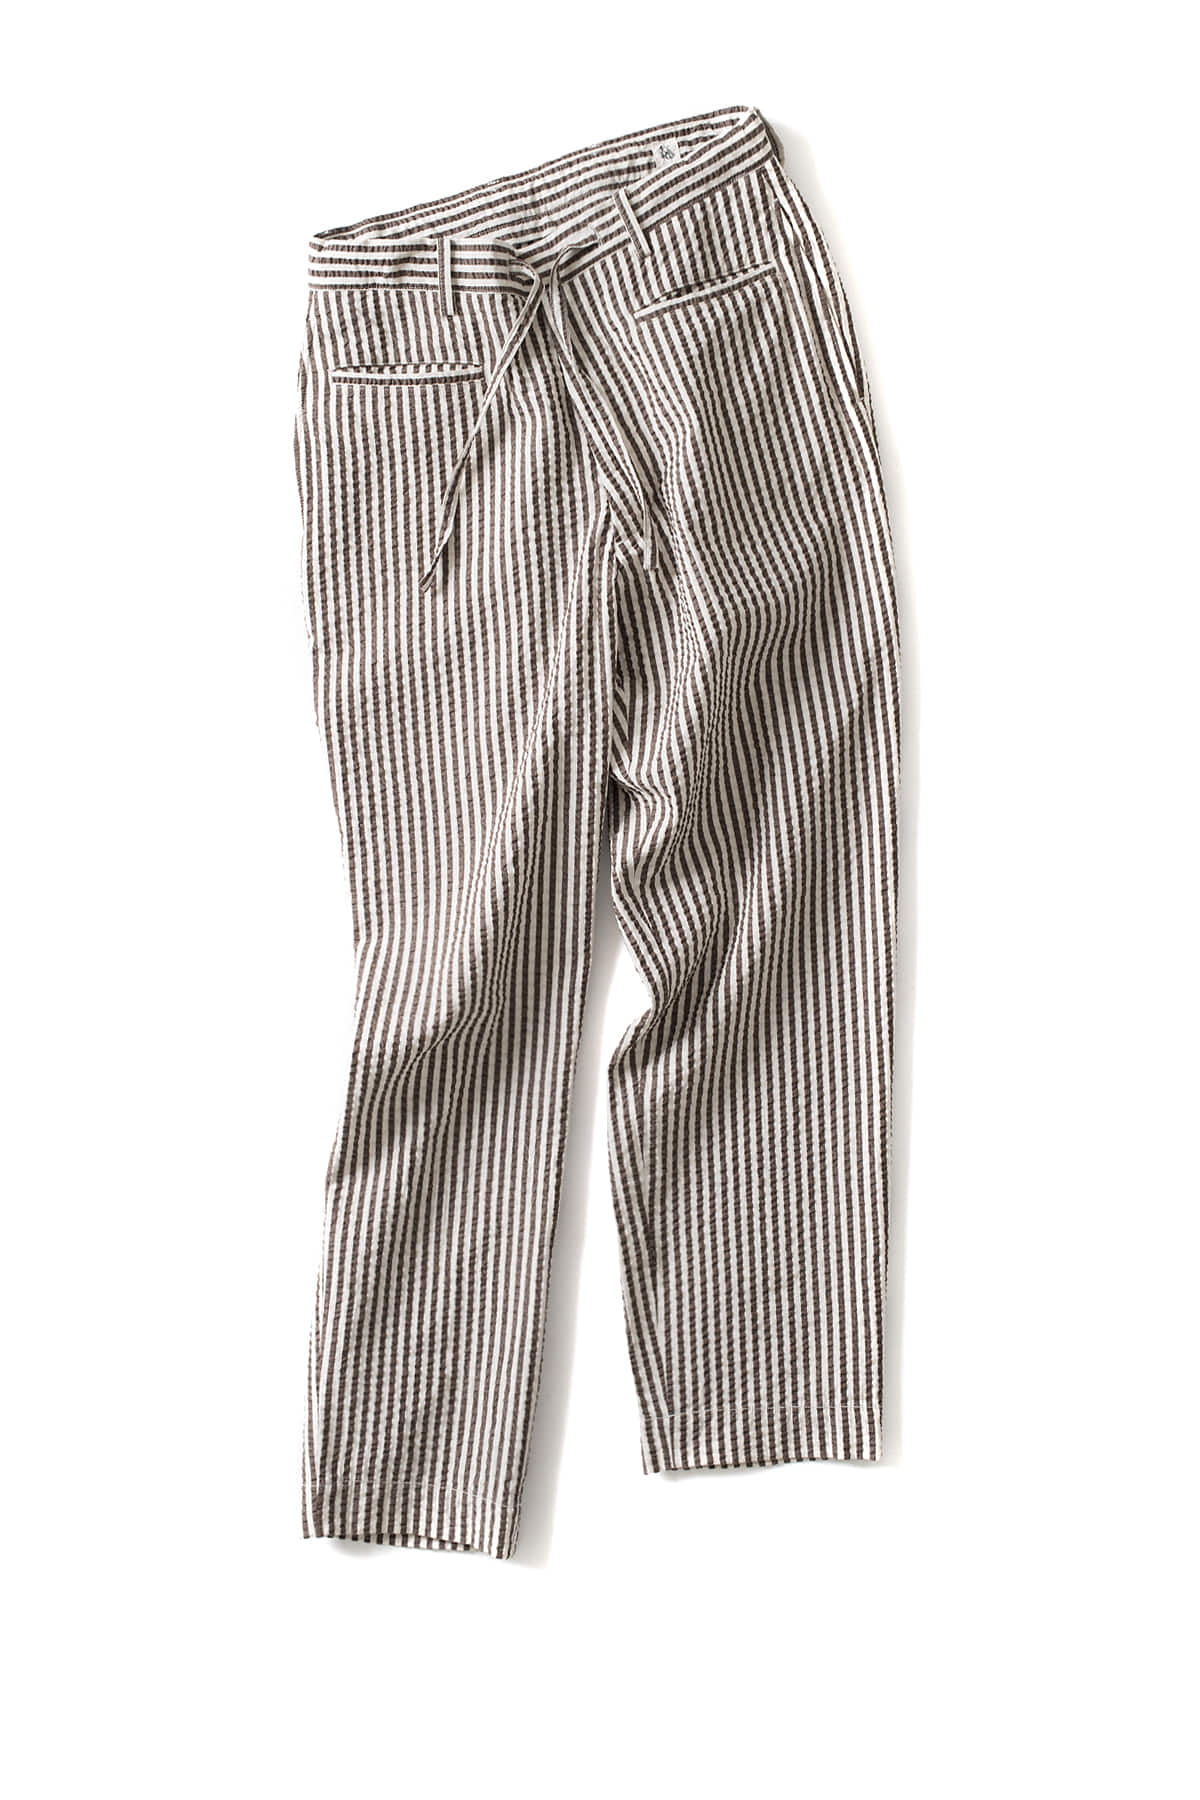 Kaptain Sunshine : Traveller Trousers  (Brown / Ivory)